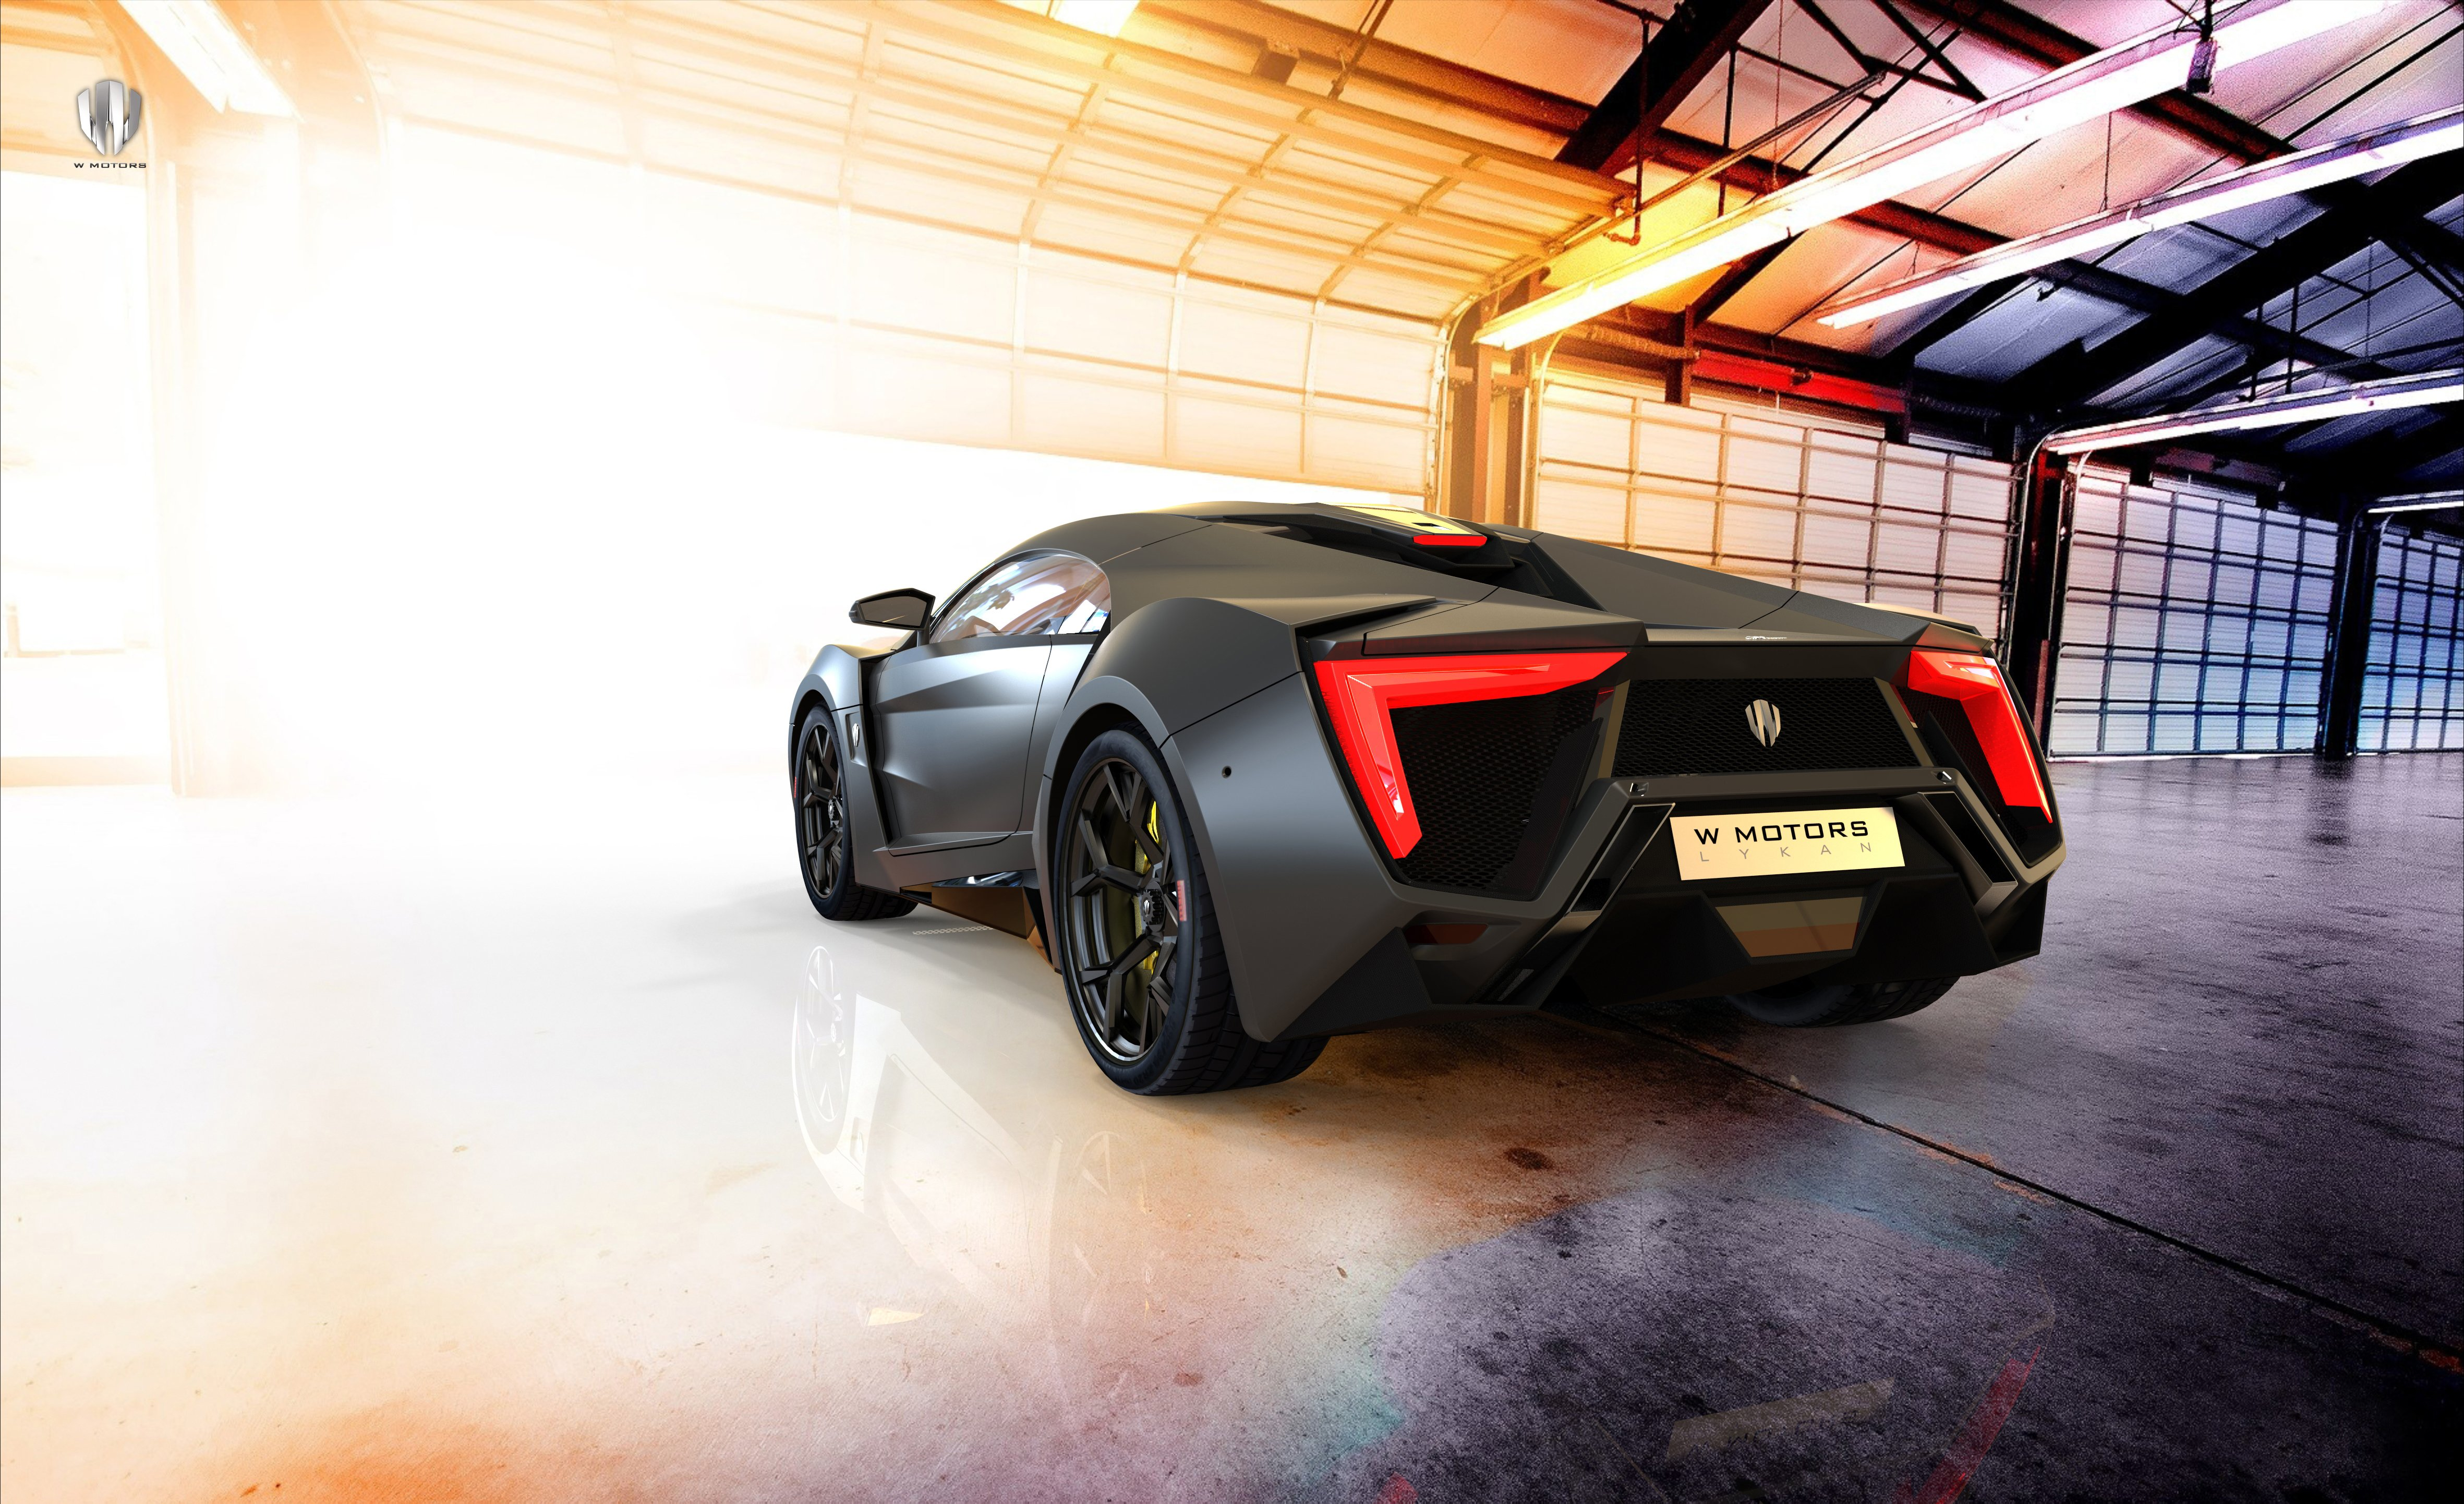 W Motors Lykan HyperSport 2014 4K wallpaper 4724x2883 629636